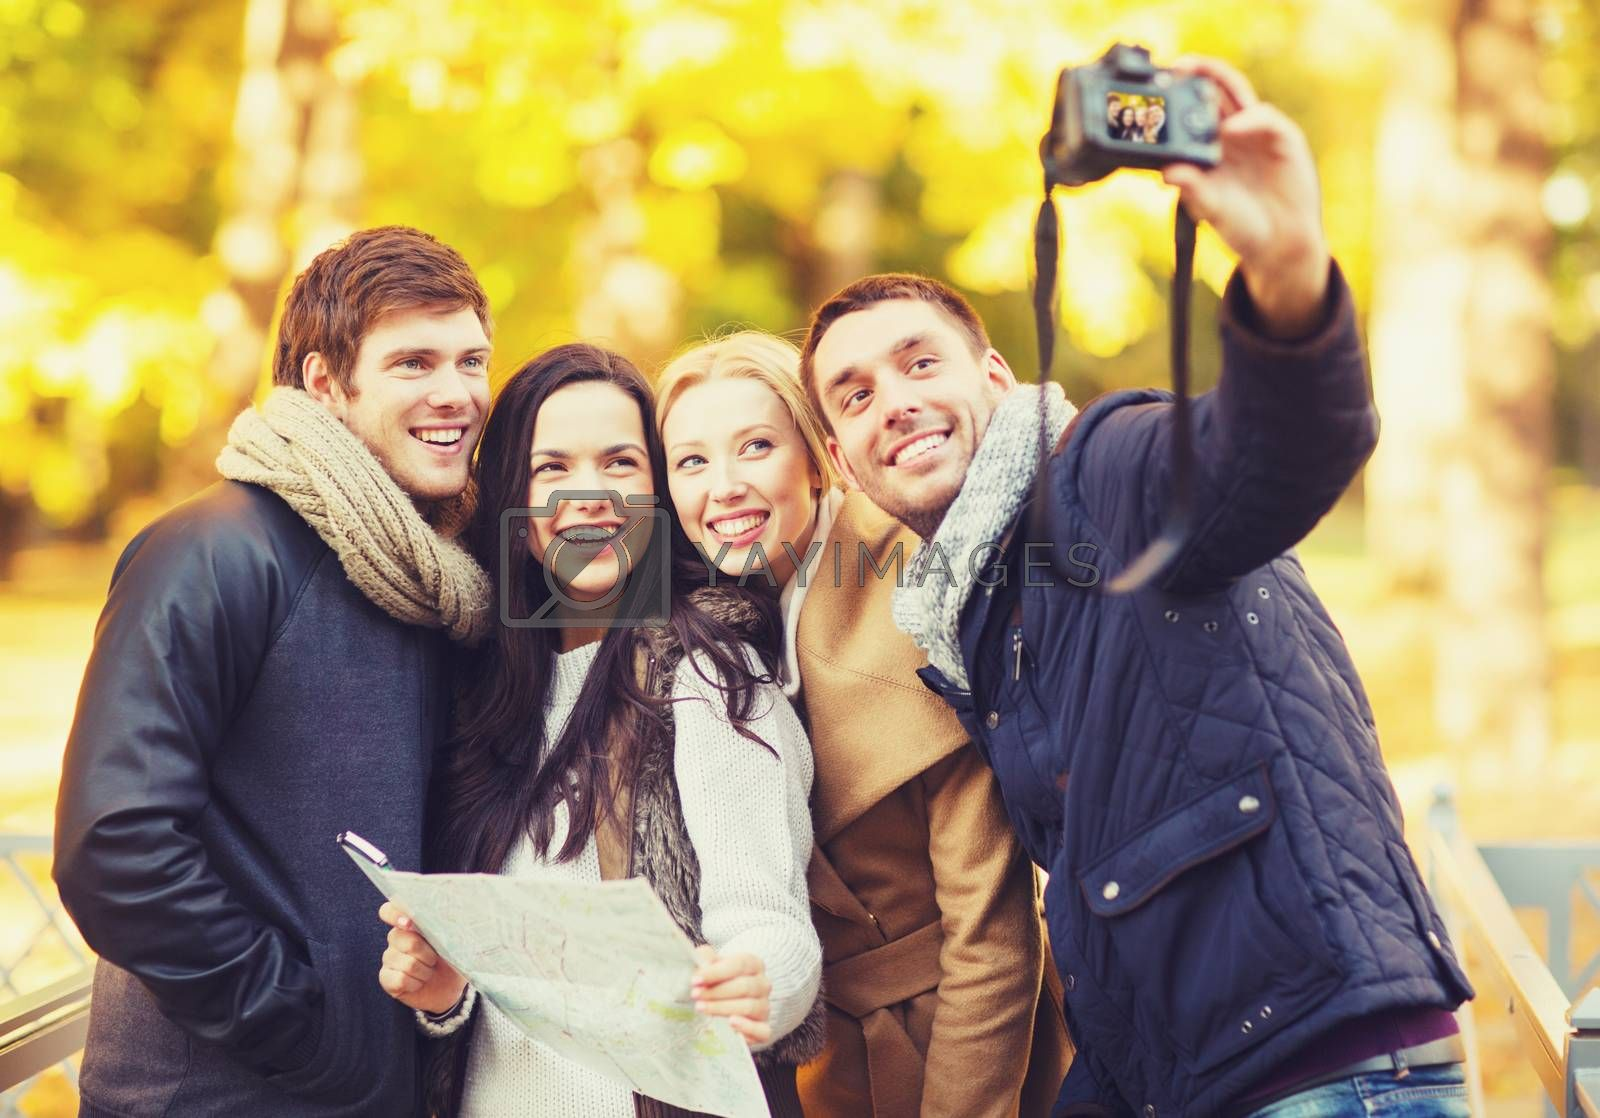 technology, holidays, travel, happy people concept - group of friends or couples having fun with photo camera in autumn park